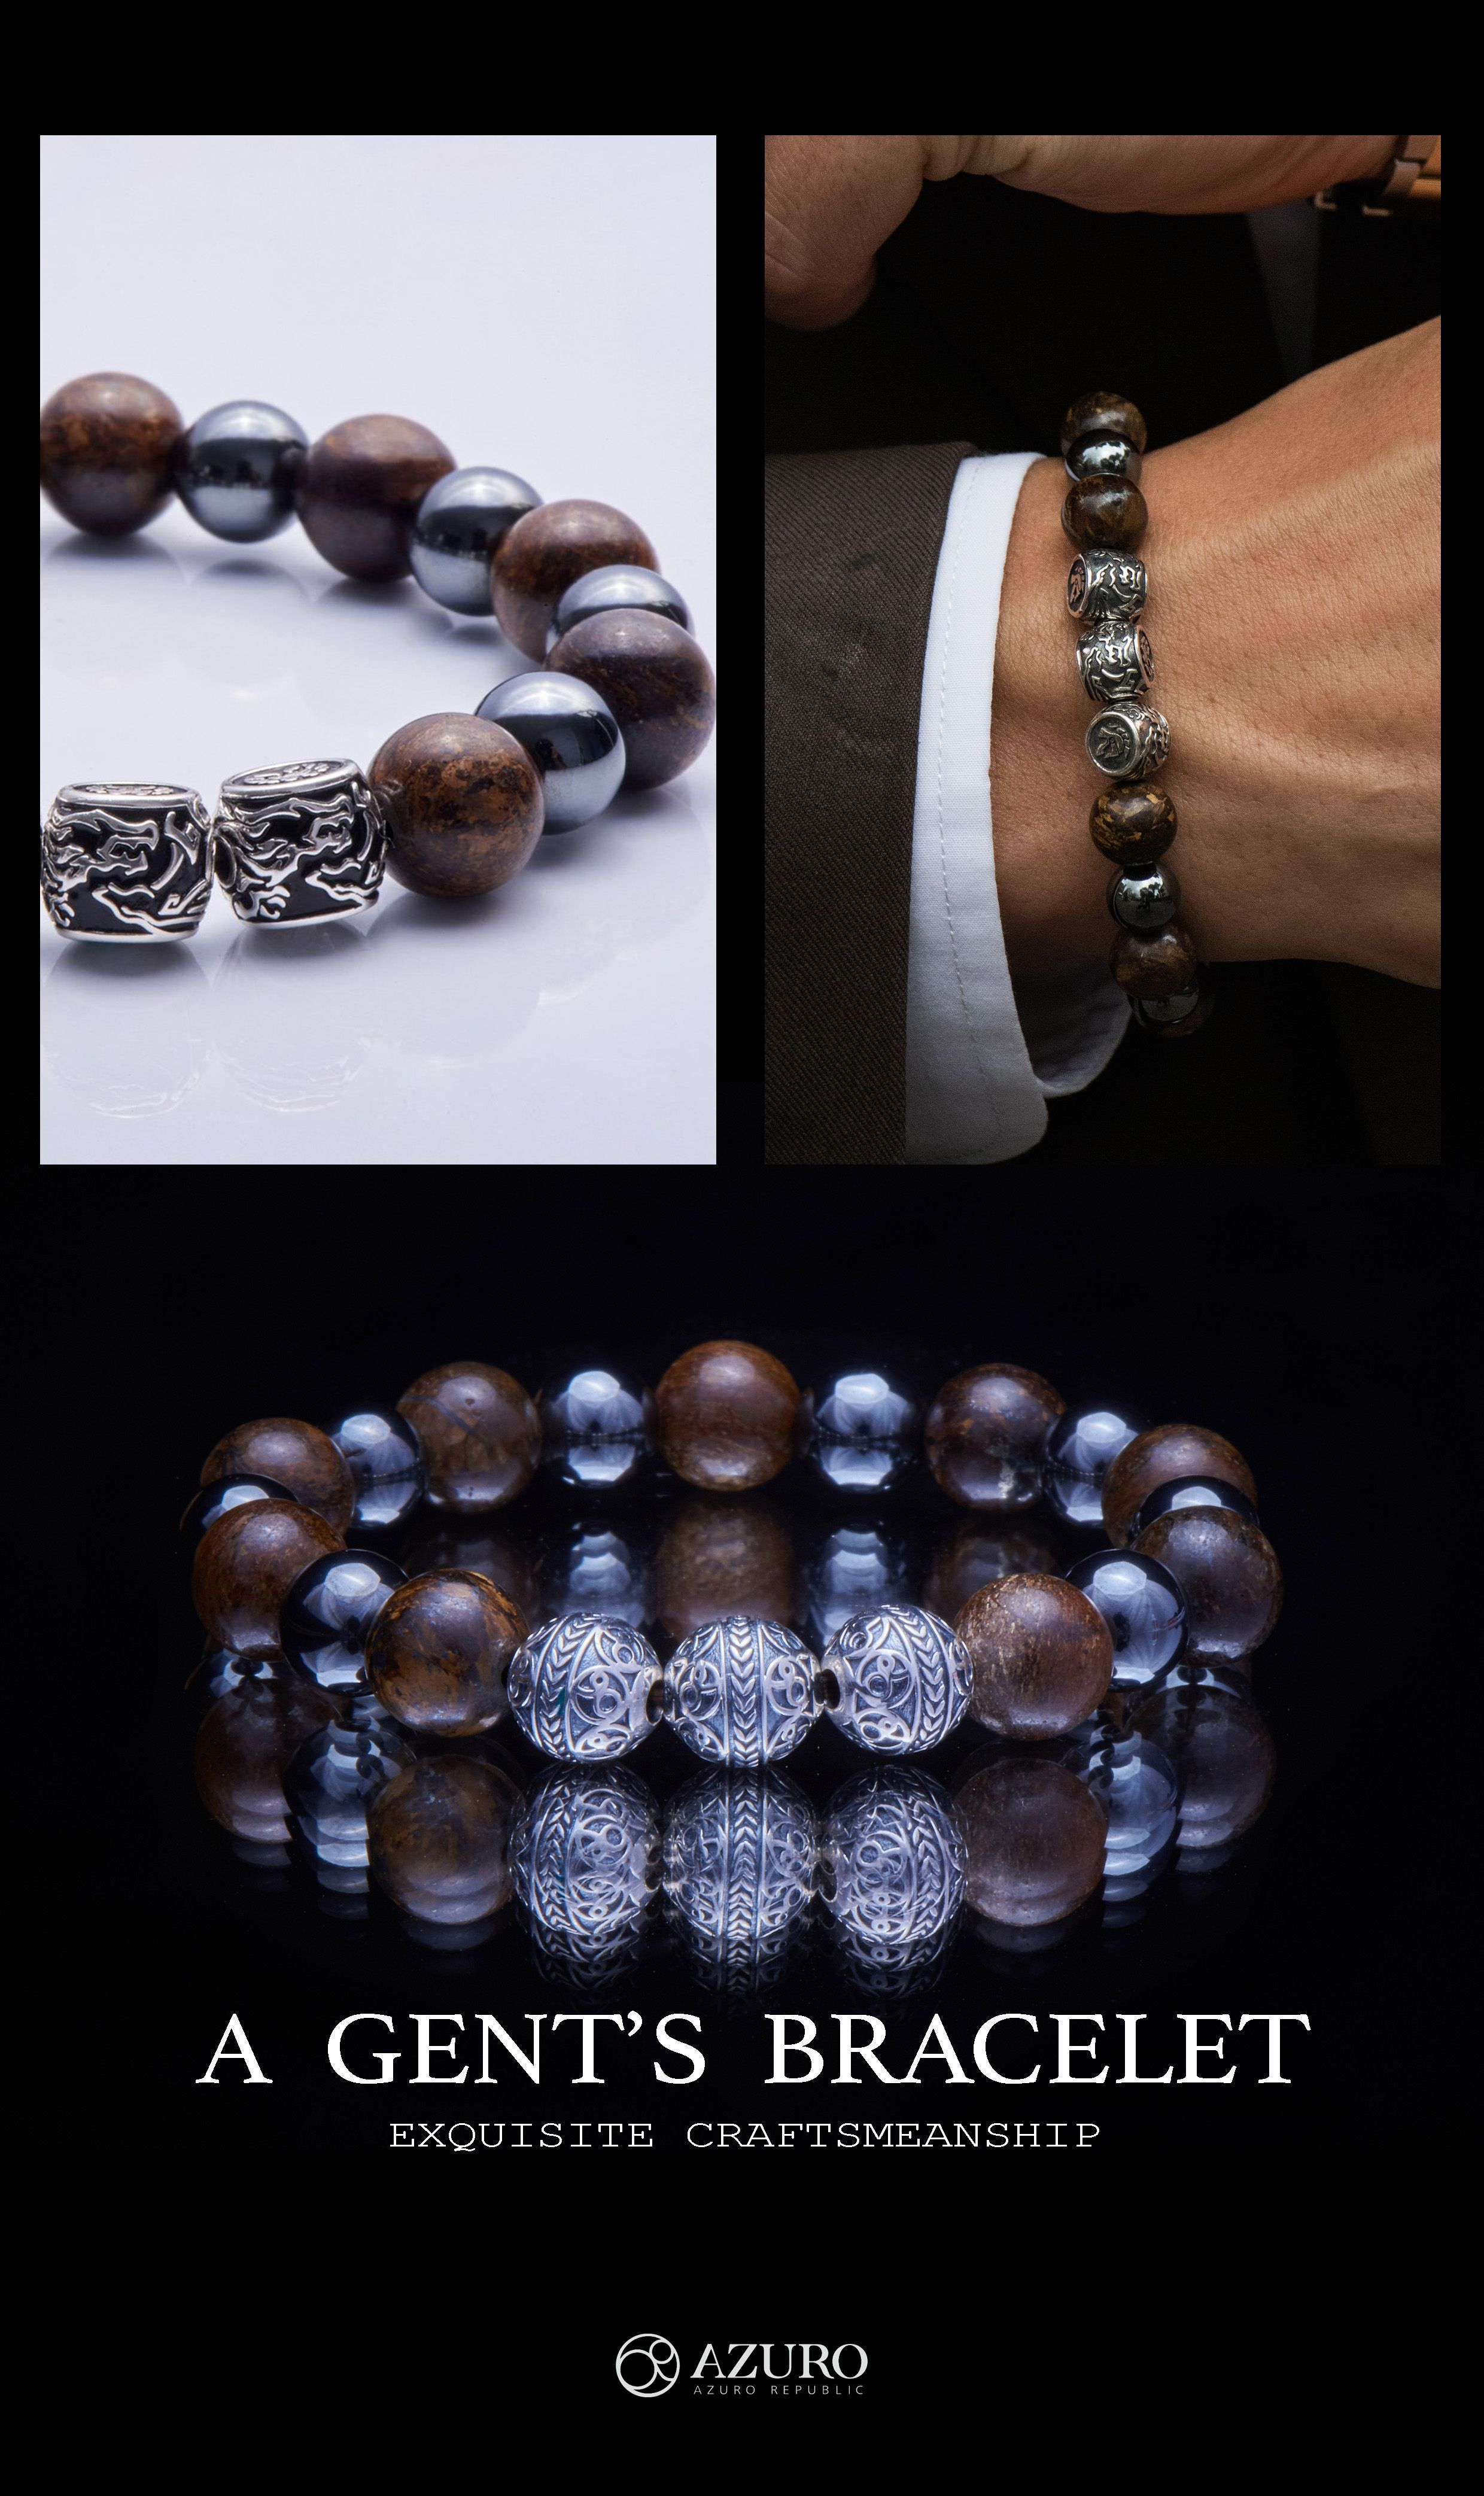 bc8a544c77f7d Collections of mens' finest beaded bracelets today from AZURO ...